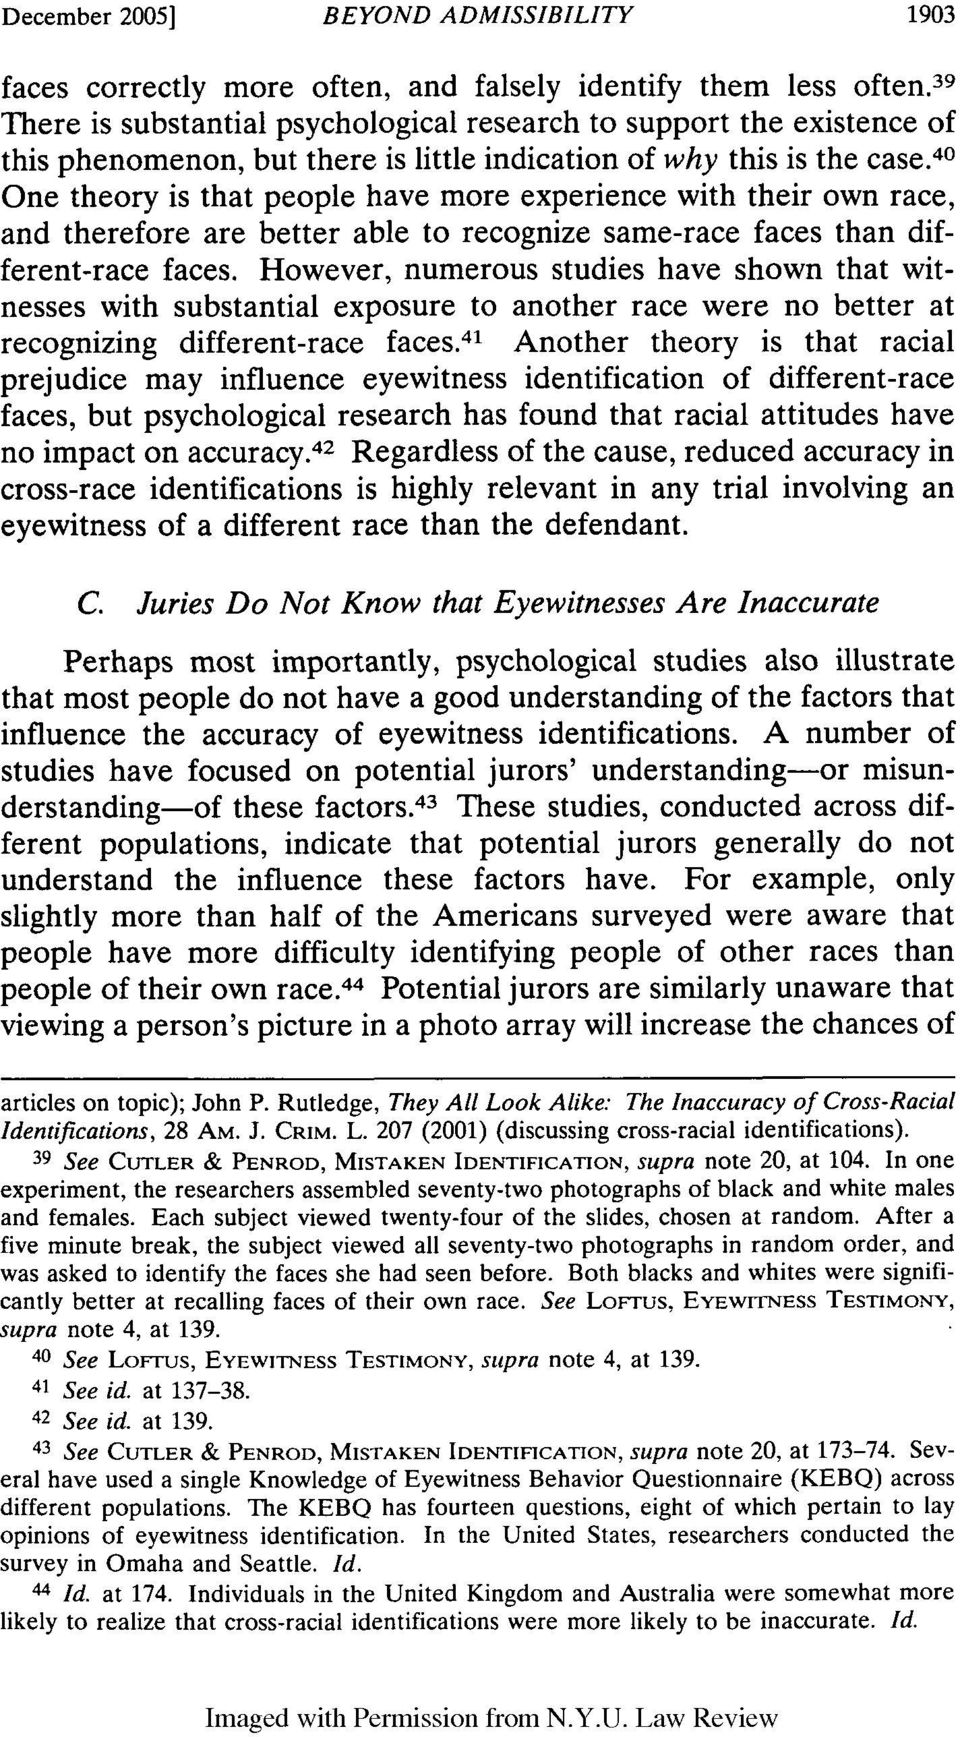 40 One theory is that people have more experience with their own race, and therefore are better able to recognize same-race faces than different-race faces.